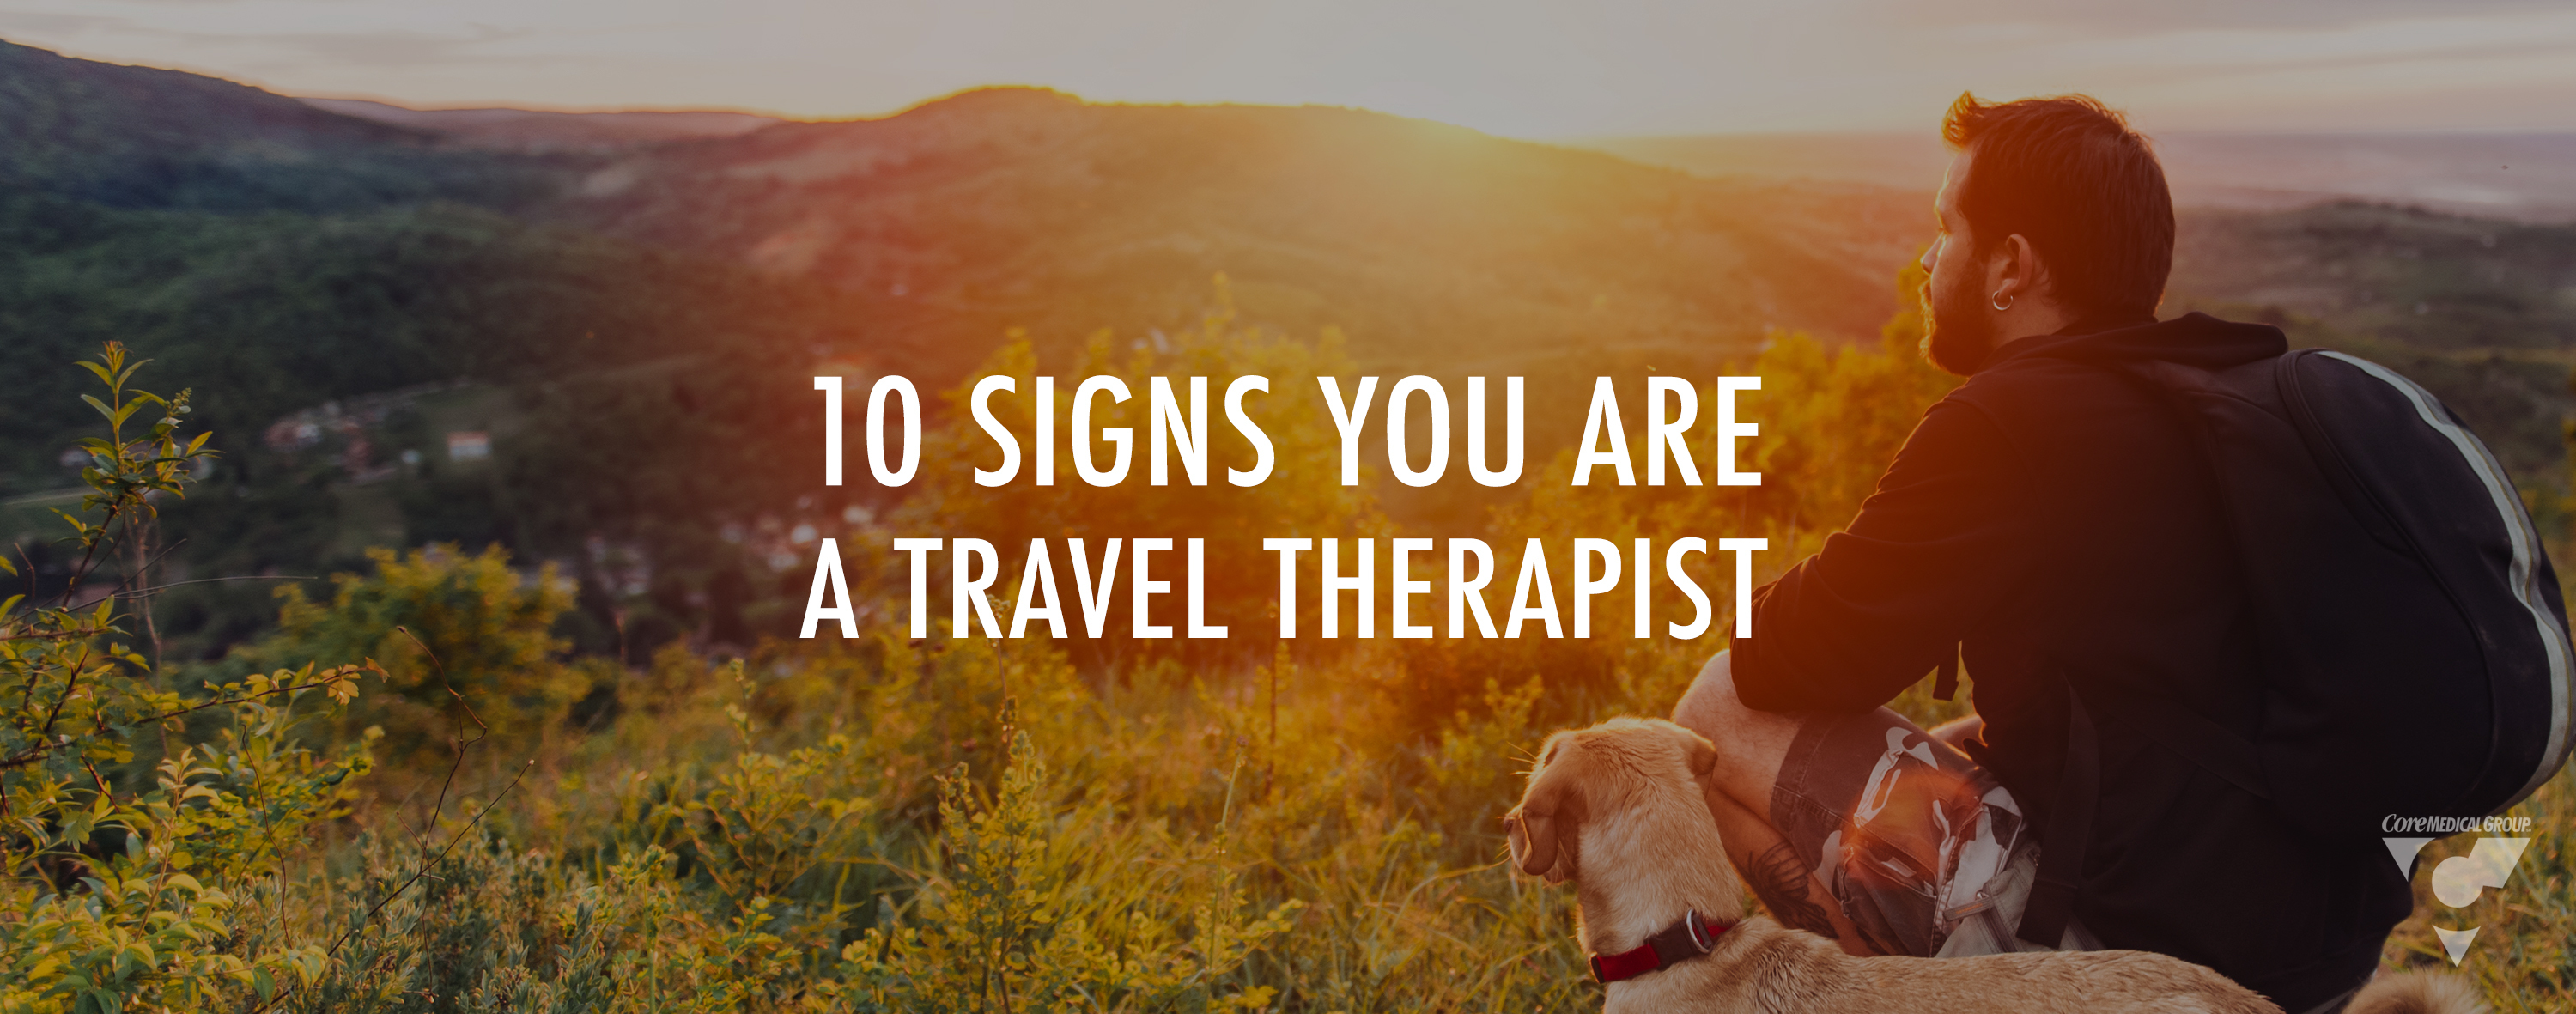 10 signs you are a travel therapist core medical group